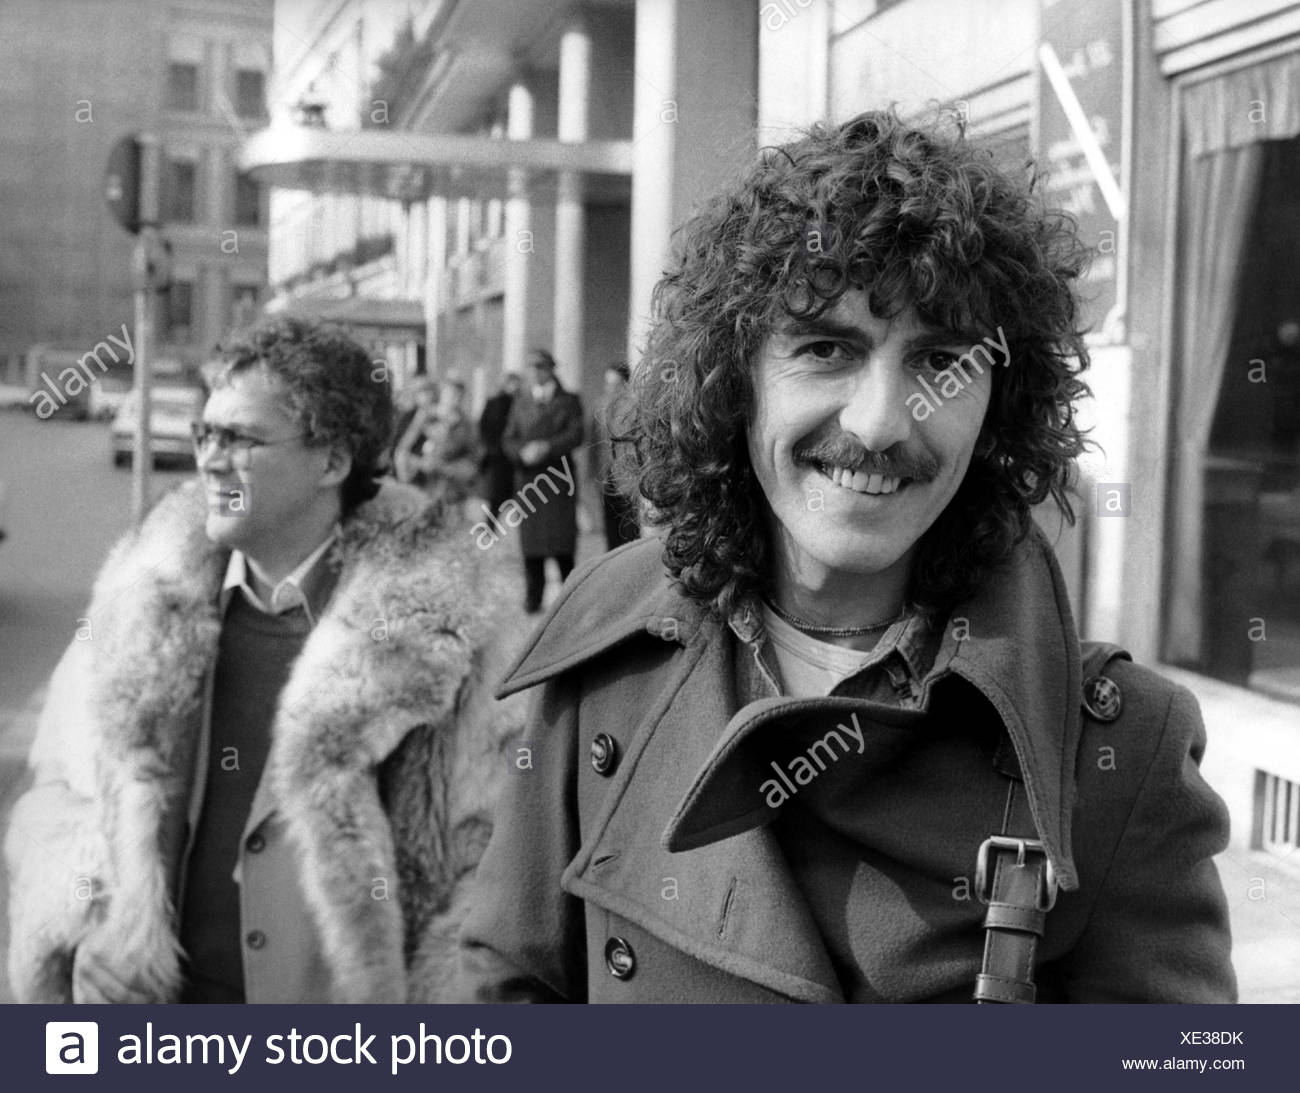 Harrison, George, 25.2.1943 - 29.11.2001, British musician and singer, half length, in front the the hotel Bayerischer Hof, Munich, 2.2.1977, Additional-Rights-Clearances-NA - Stock Image